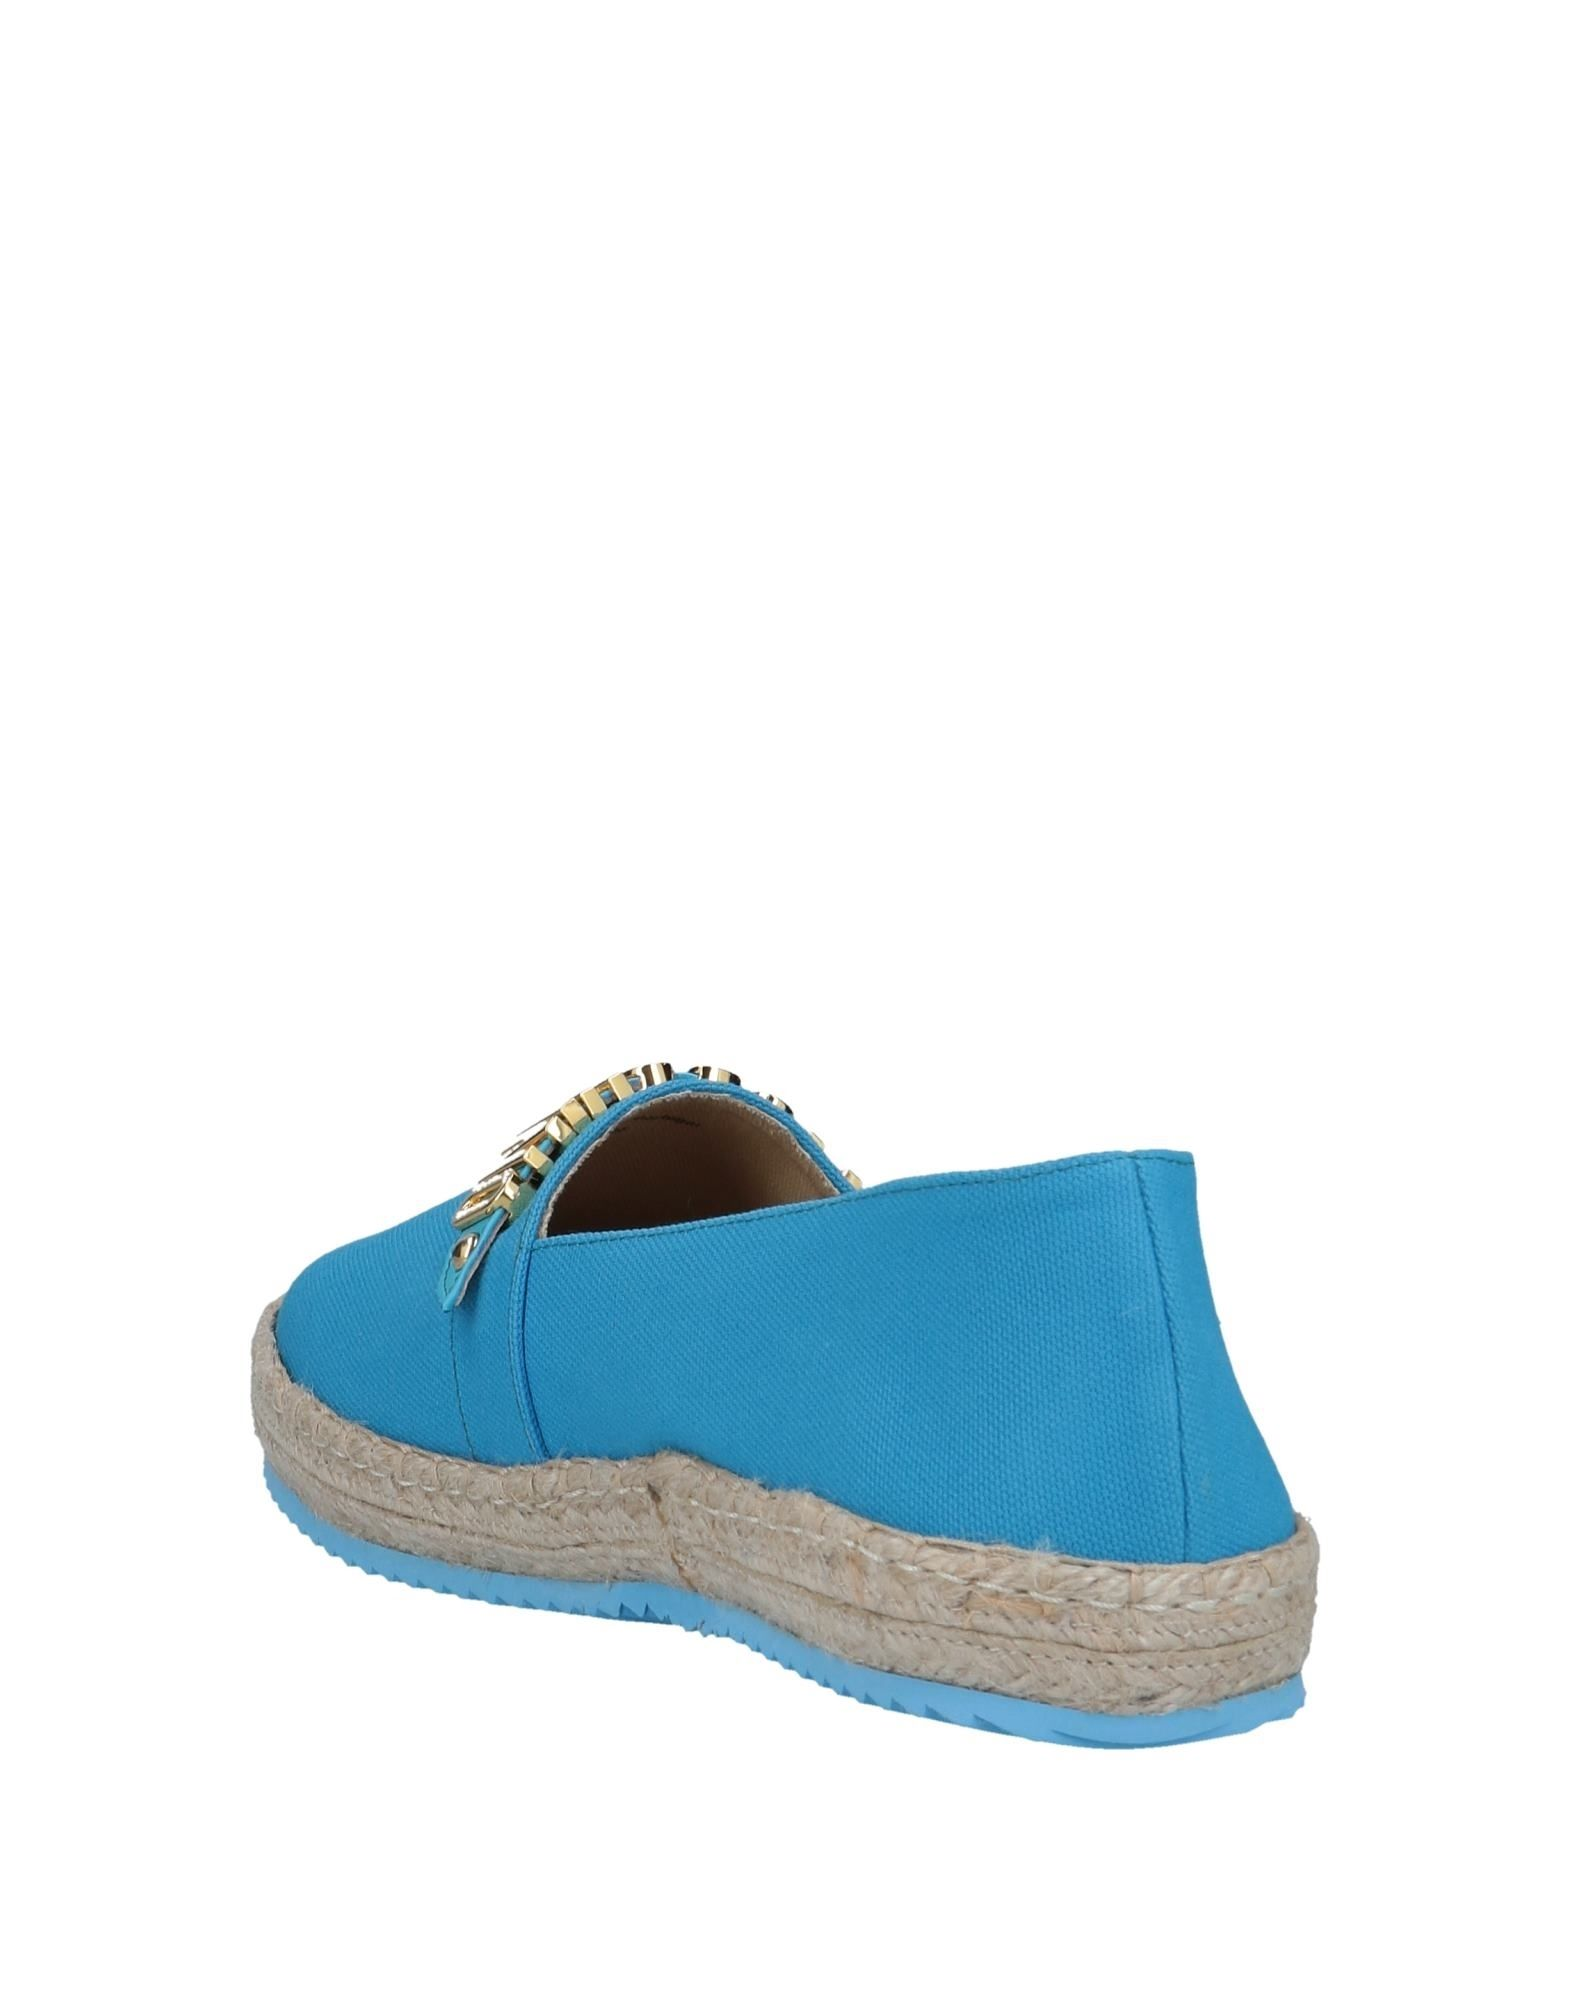 Moschino Espadrilles - - - Women Moschino Espadrilles online on  United Kingdom - 11550881DL ba6ef1